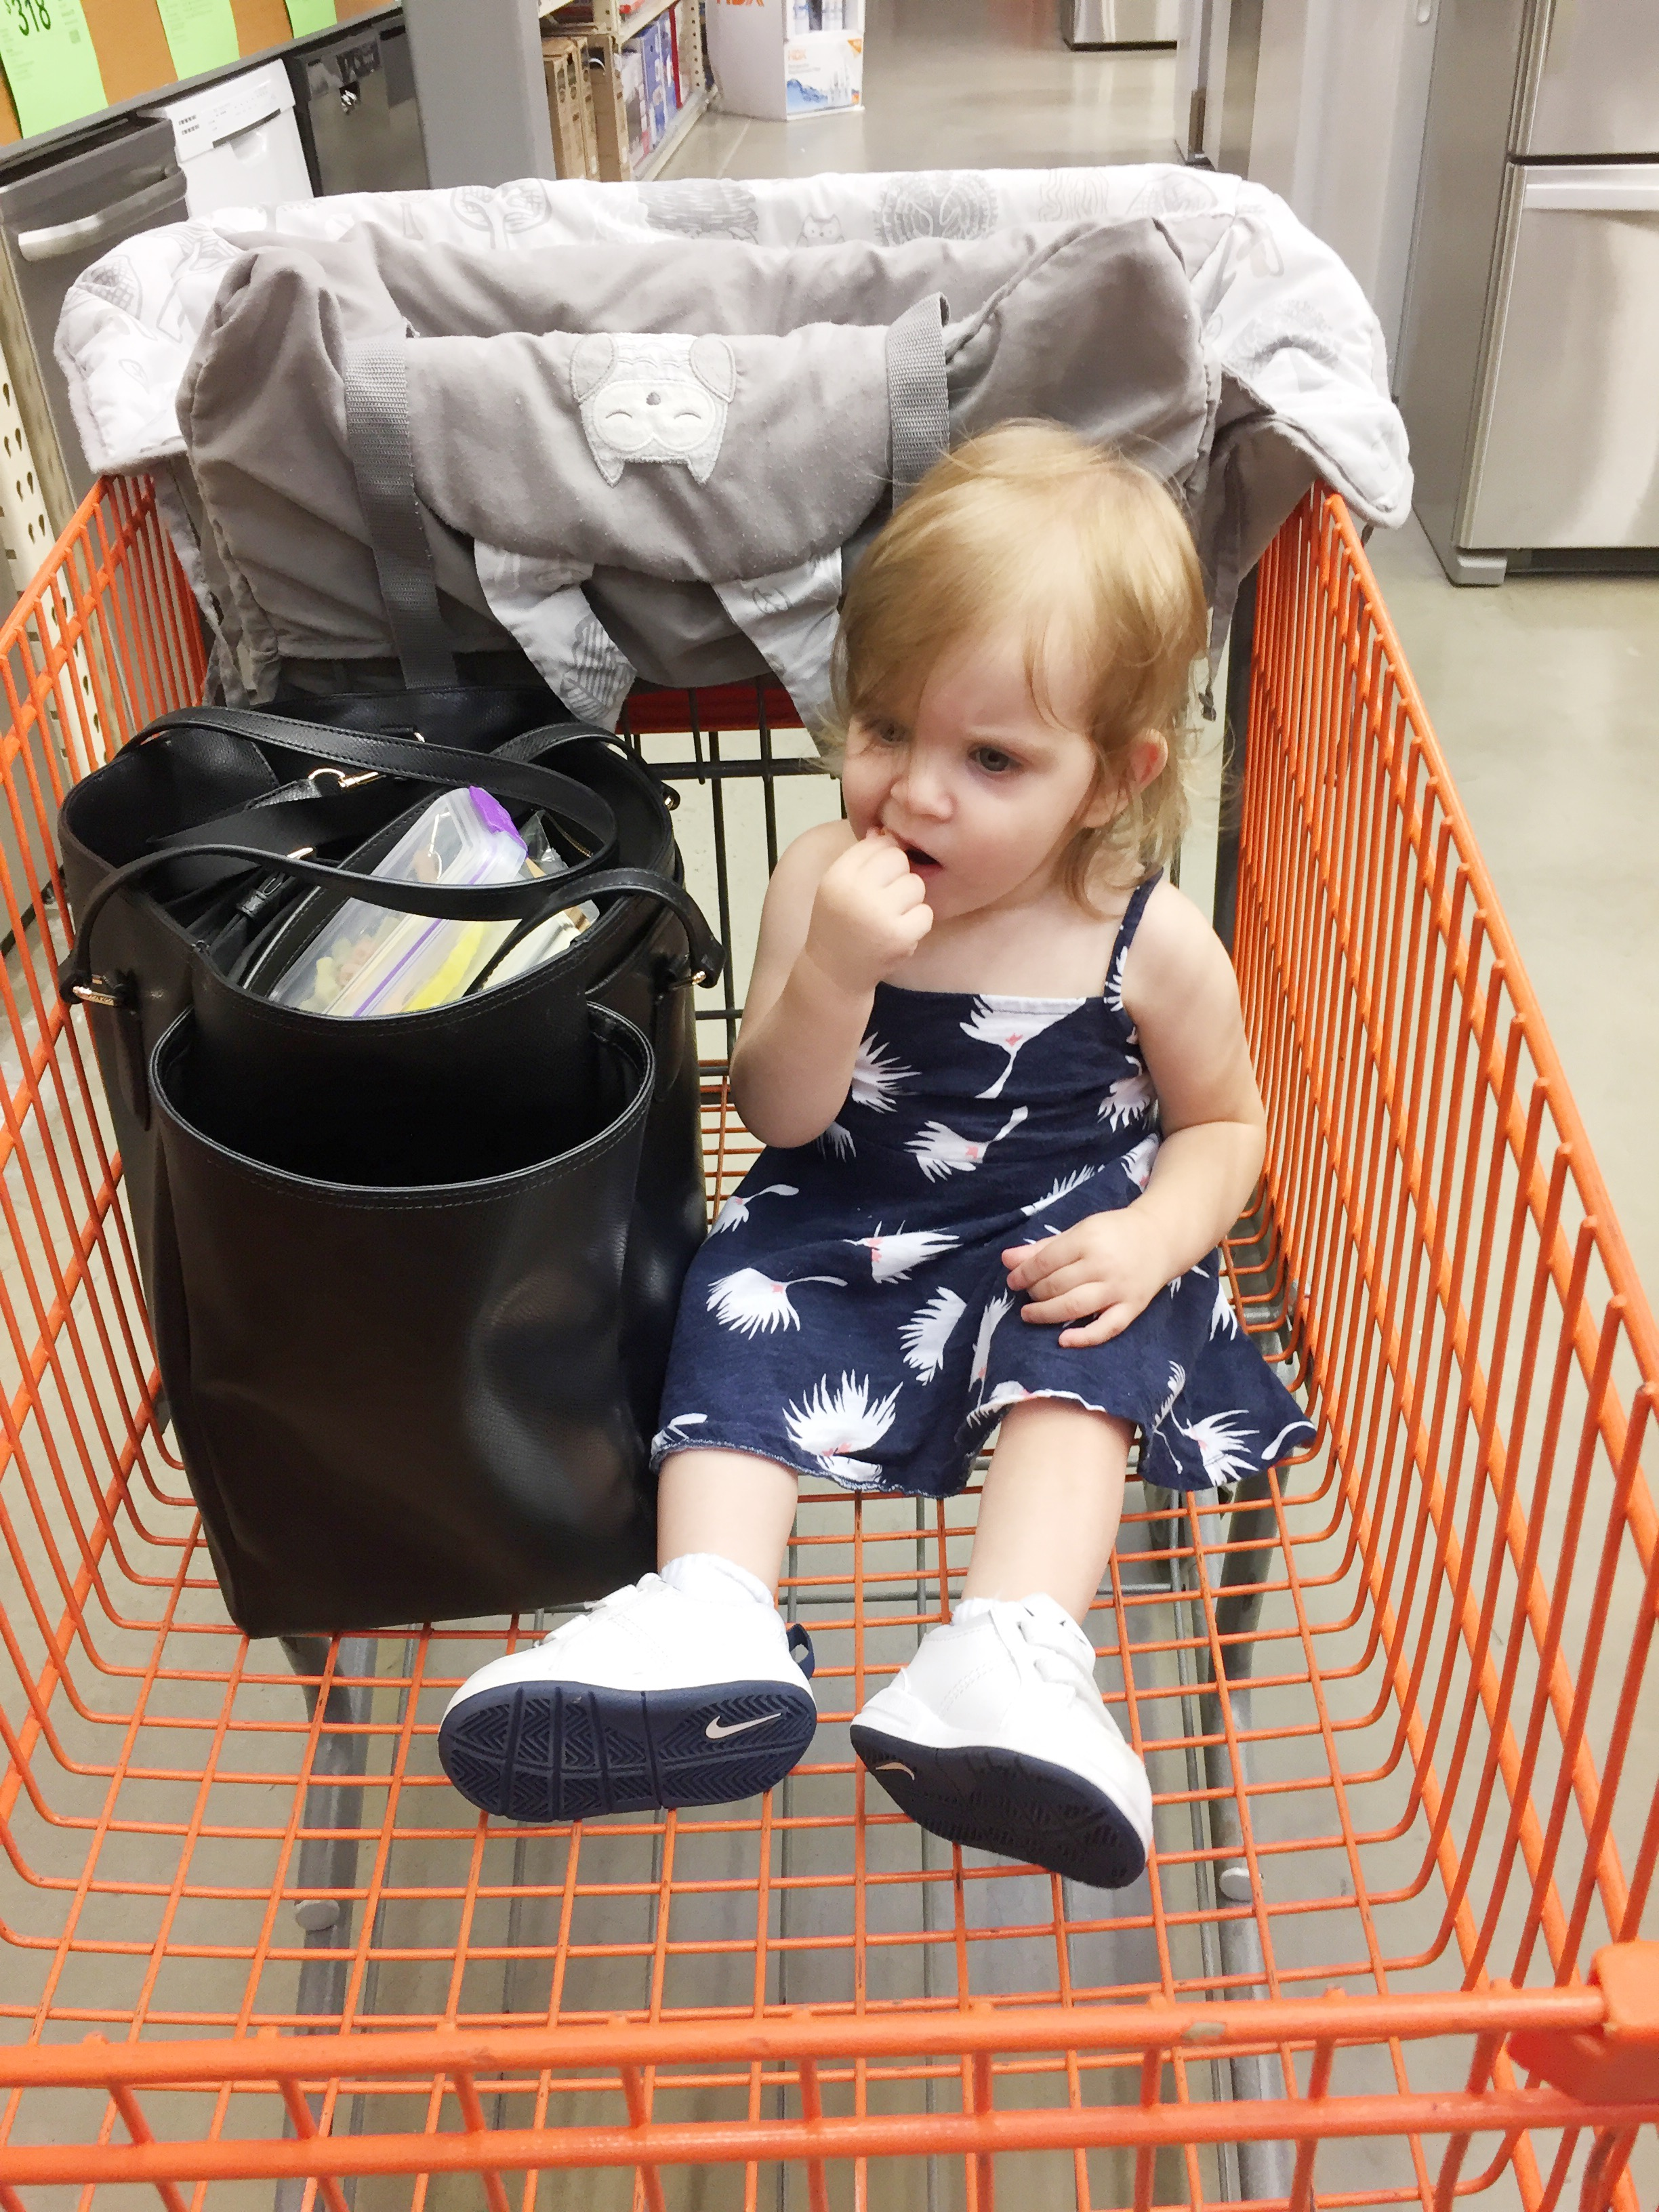 Unfortunately, Home Depot does not offer cute baby discounts on appliances.